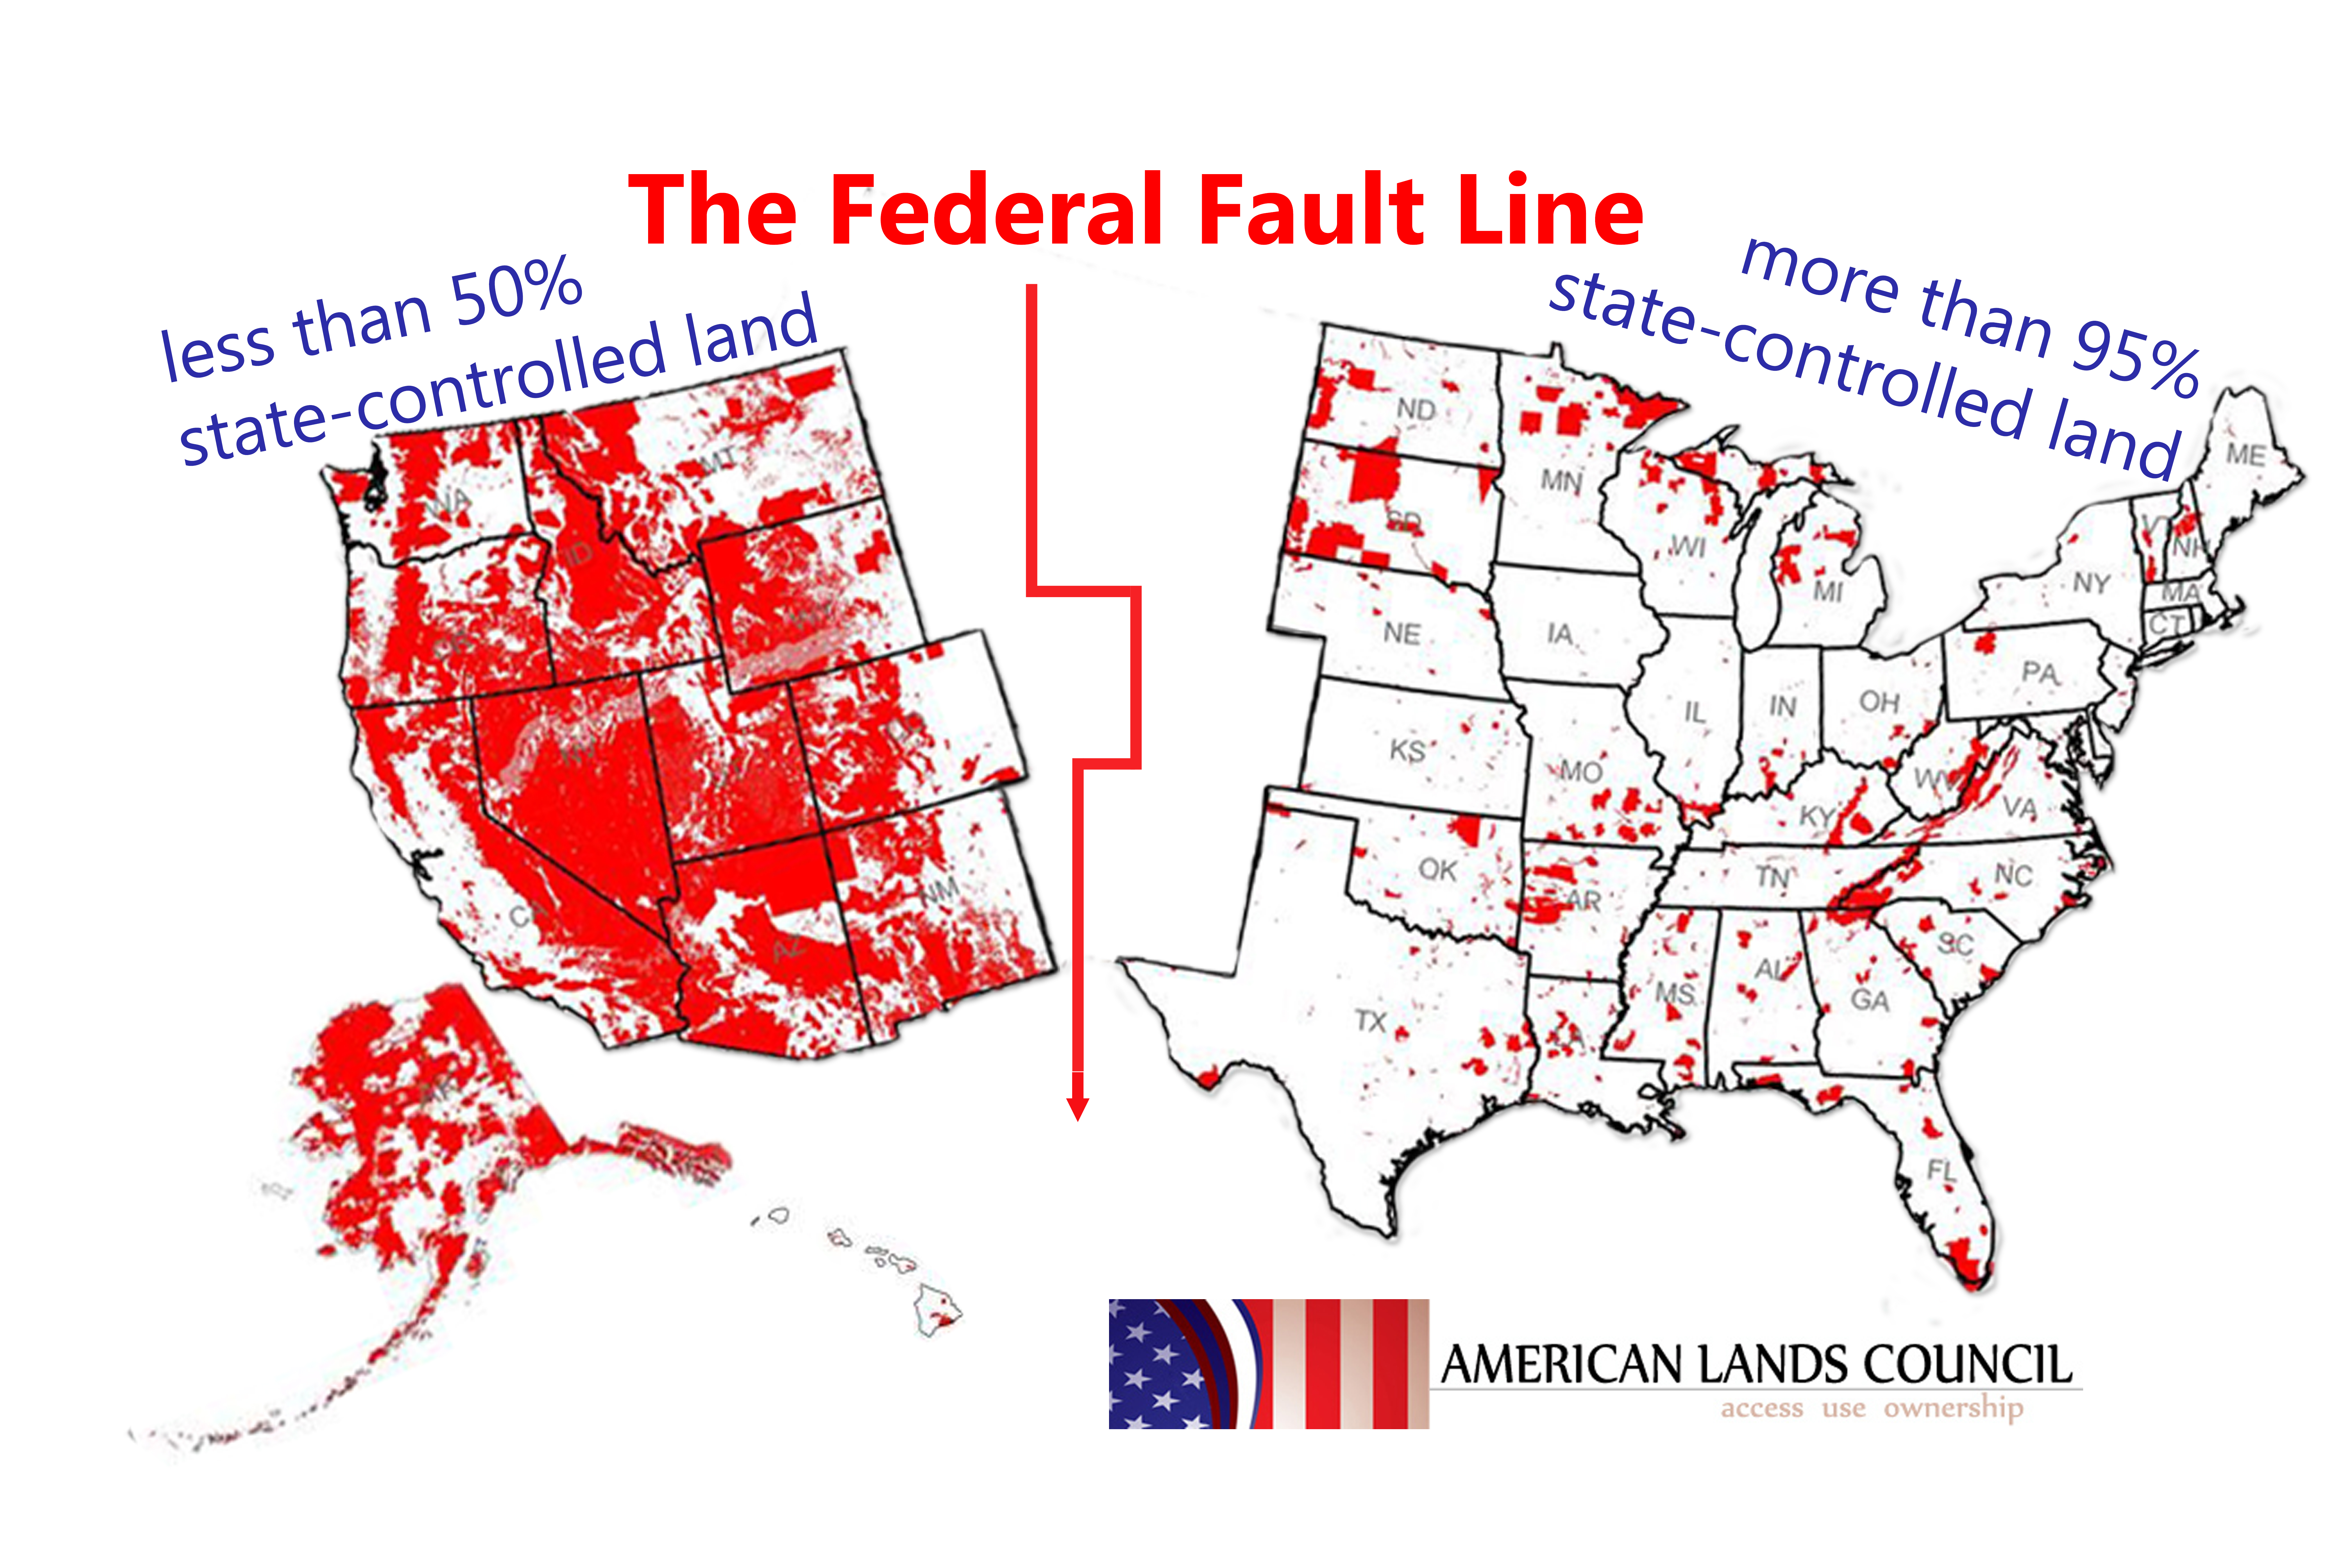 fault_line_large_(made_for_36_x_24__.jpg